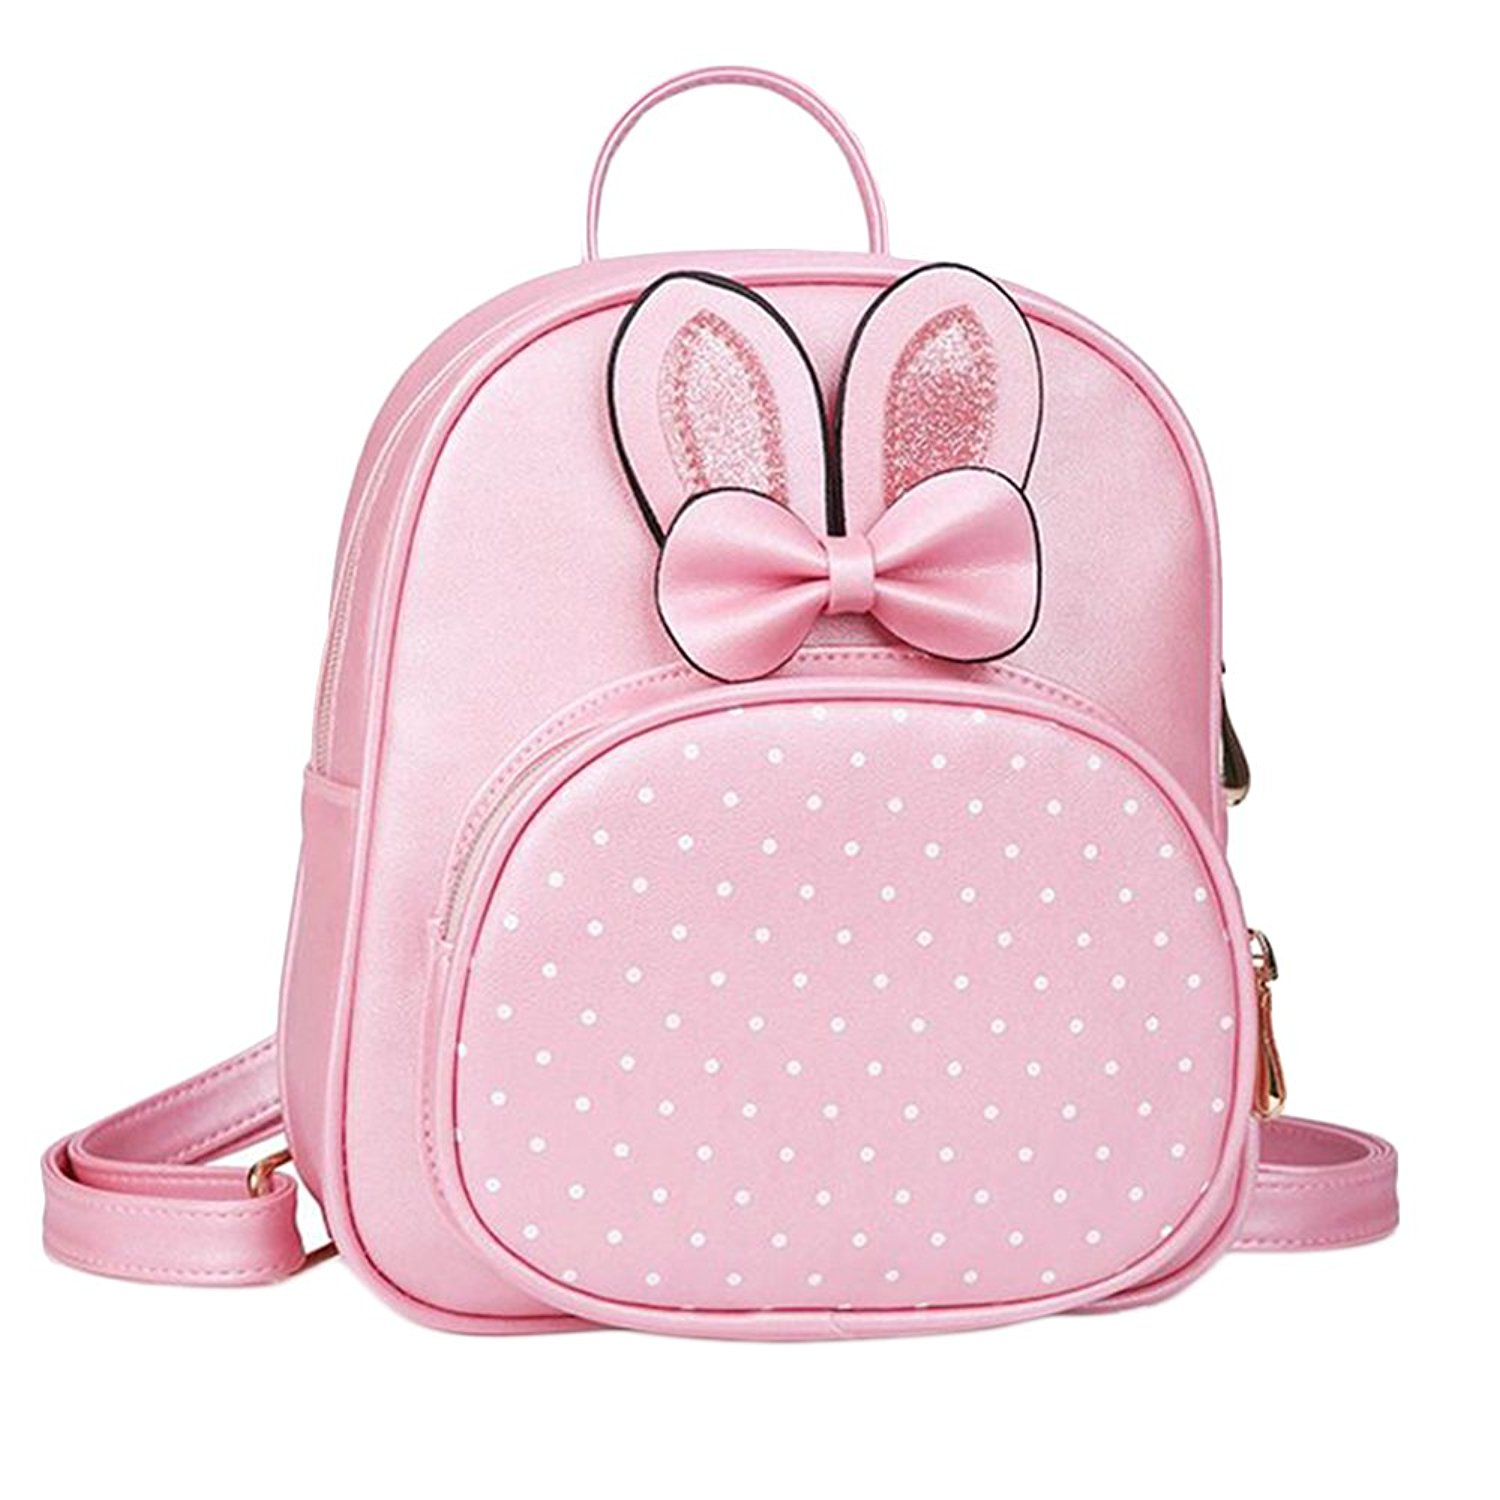 2ee908960a Cute Mini Backpacks for Girls Toddler Little Kids Book bag Preschool  Backpacks